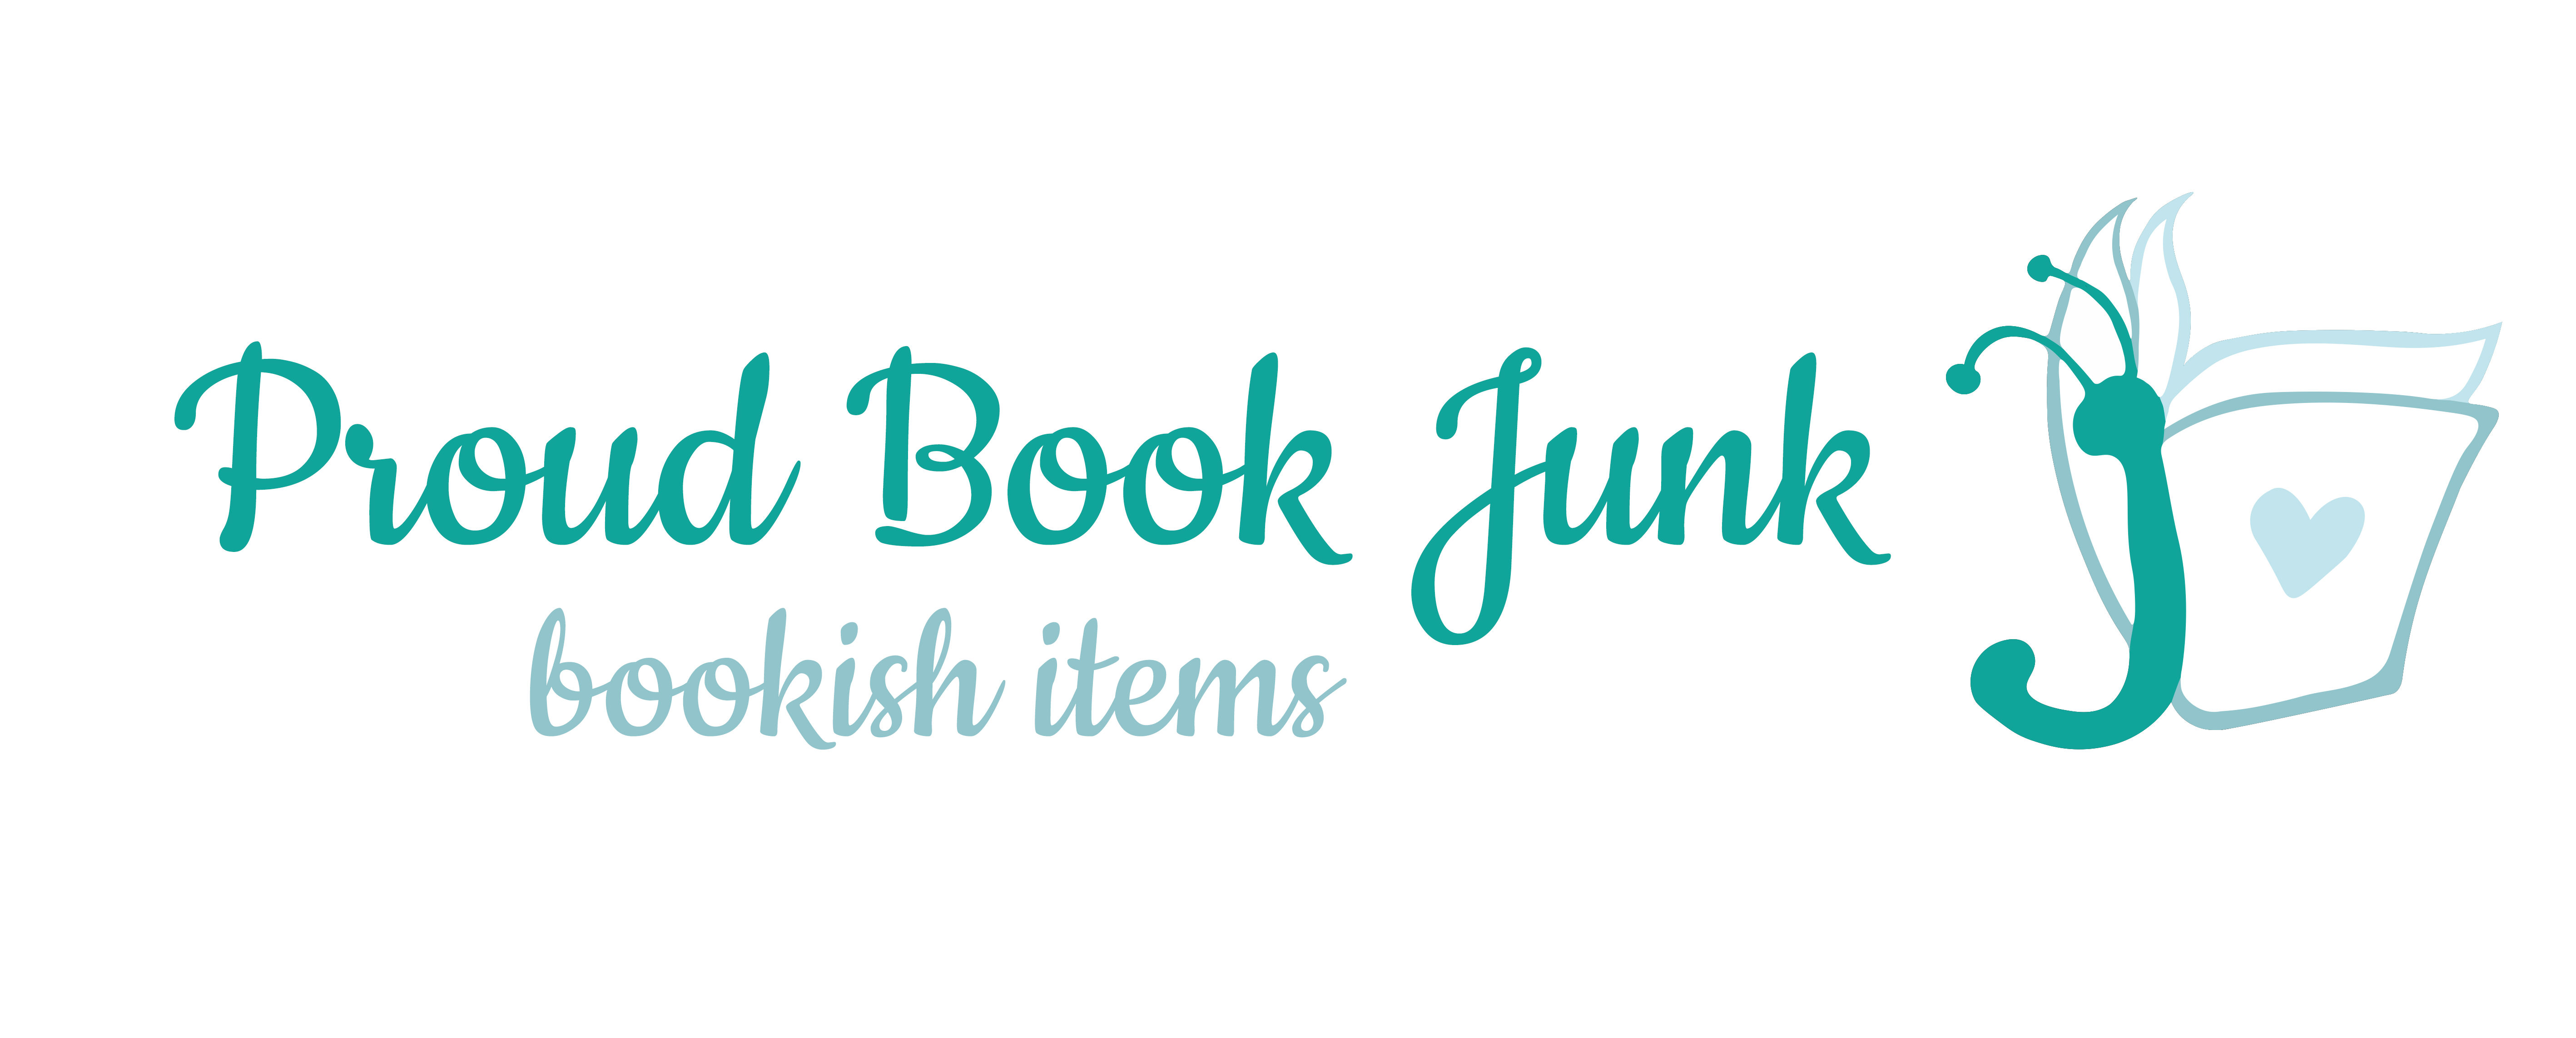 Proud Book Junk logo.jpg